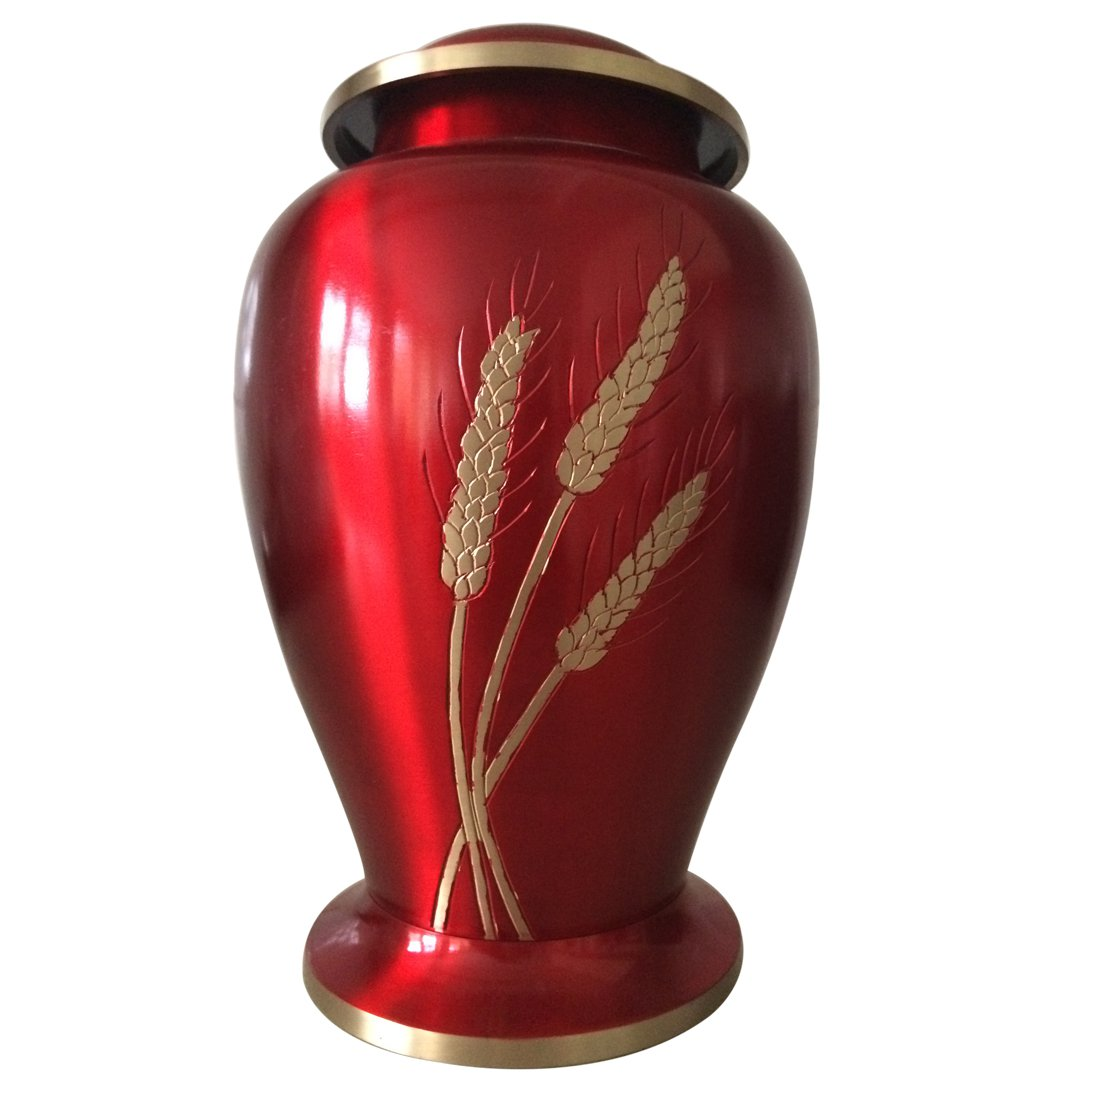 Large Size Autumn Harvest Red Color Adult Cremation Urn For Human Ashes